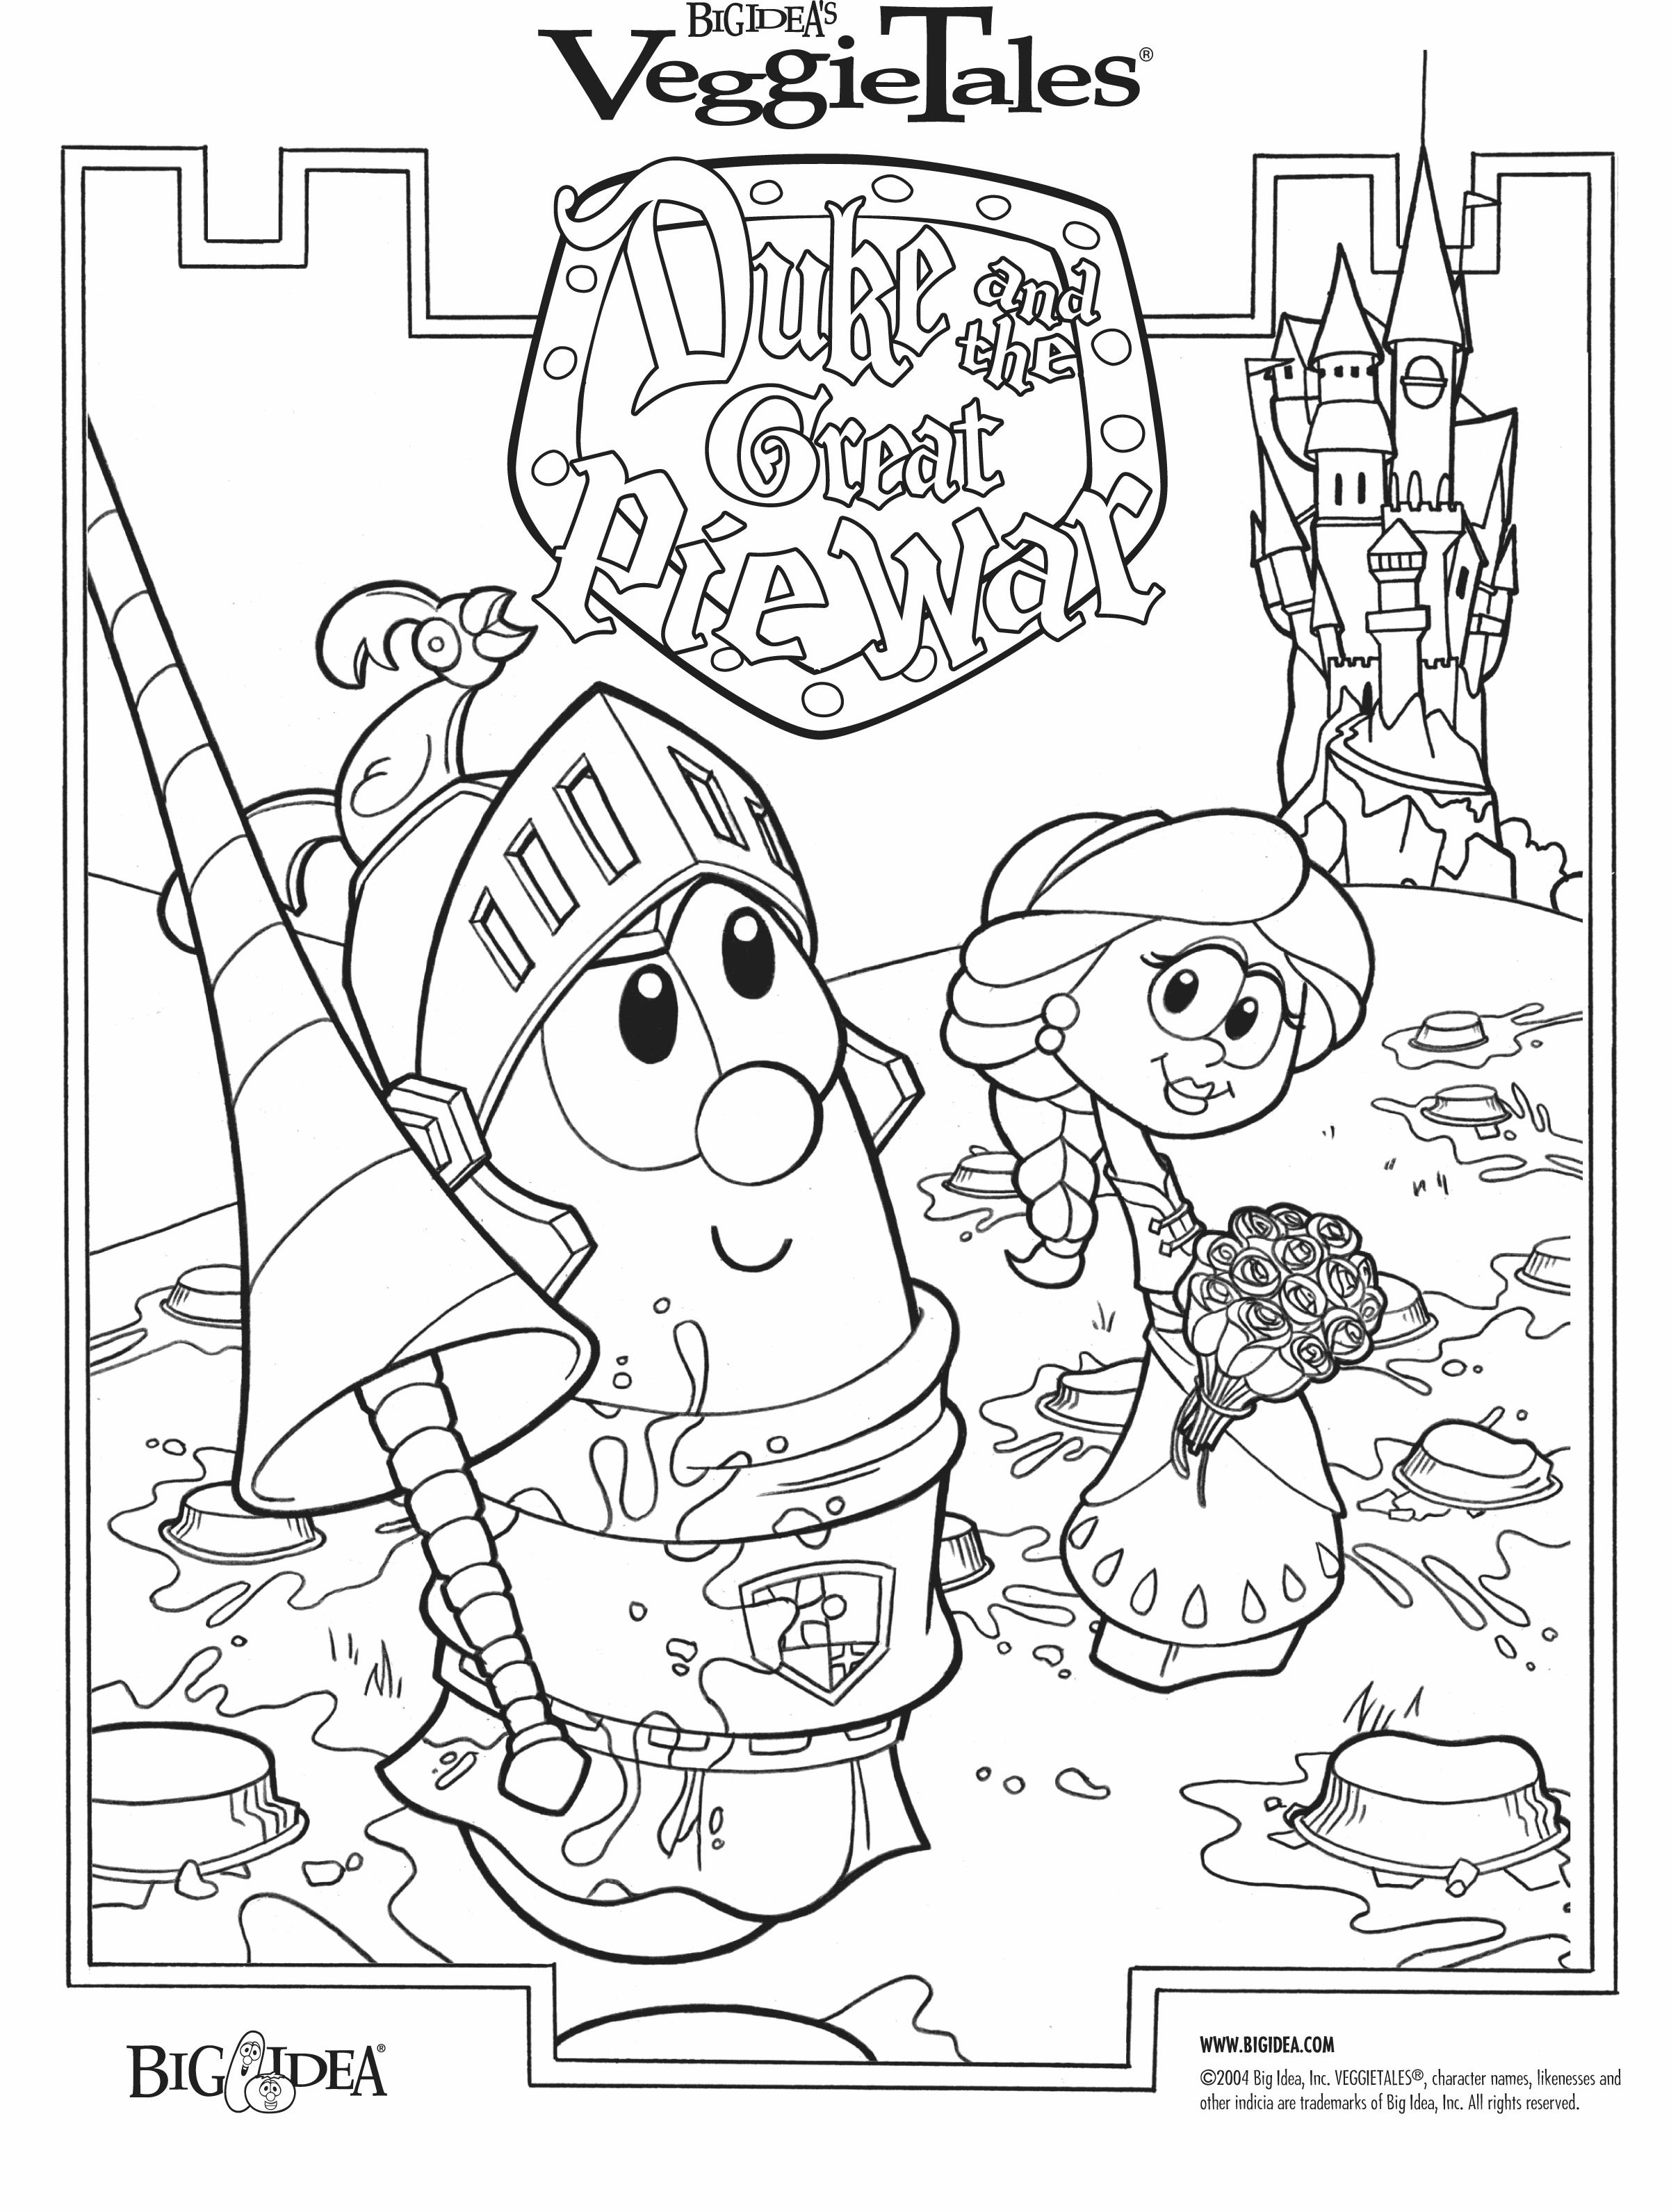 Veggie Tales Christmas Coloring Pages With VeggieTales Duke And The Great Pie War Veg O Rama Jukebox Sing Along